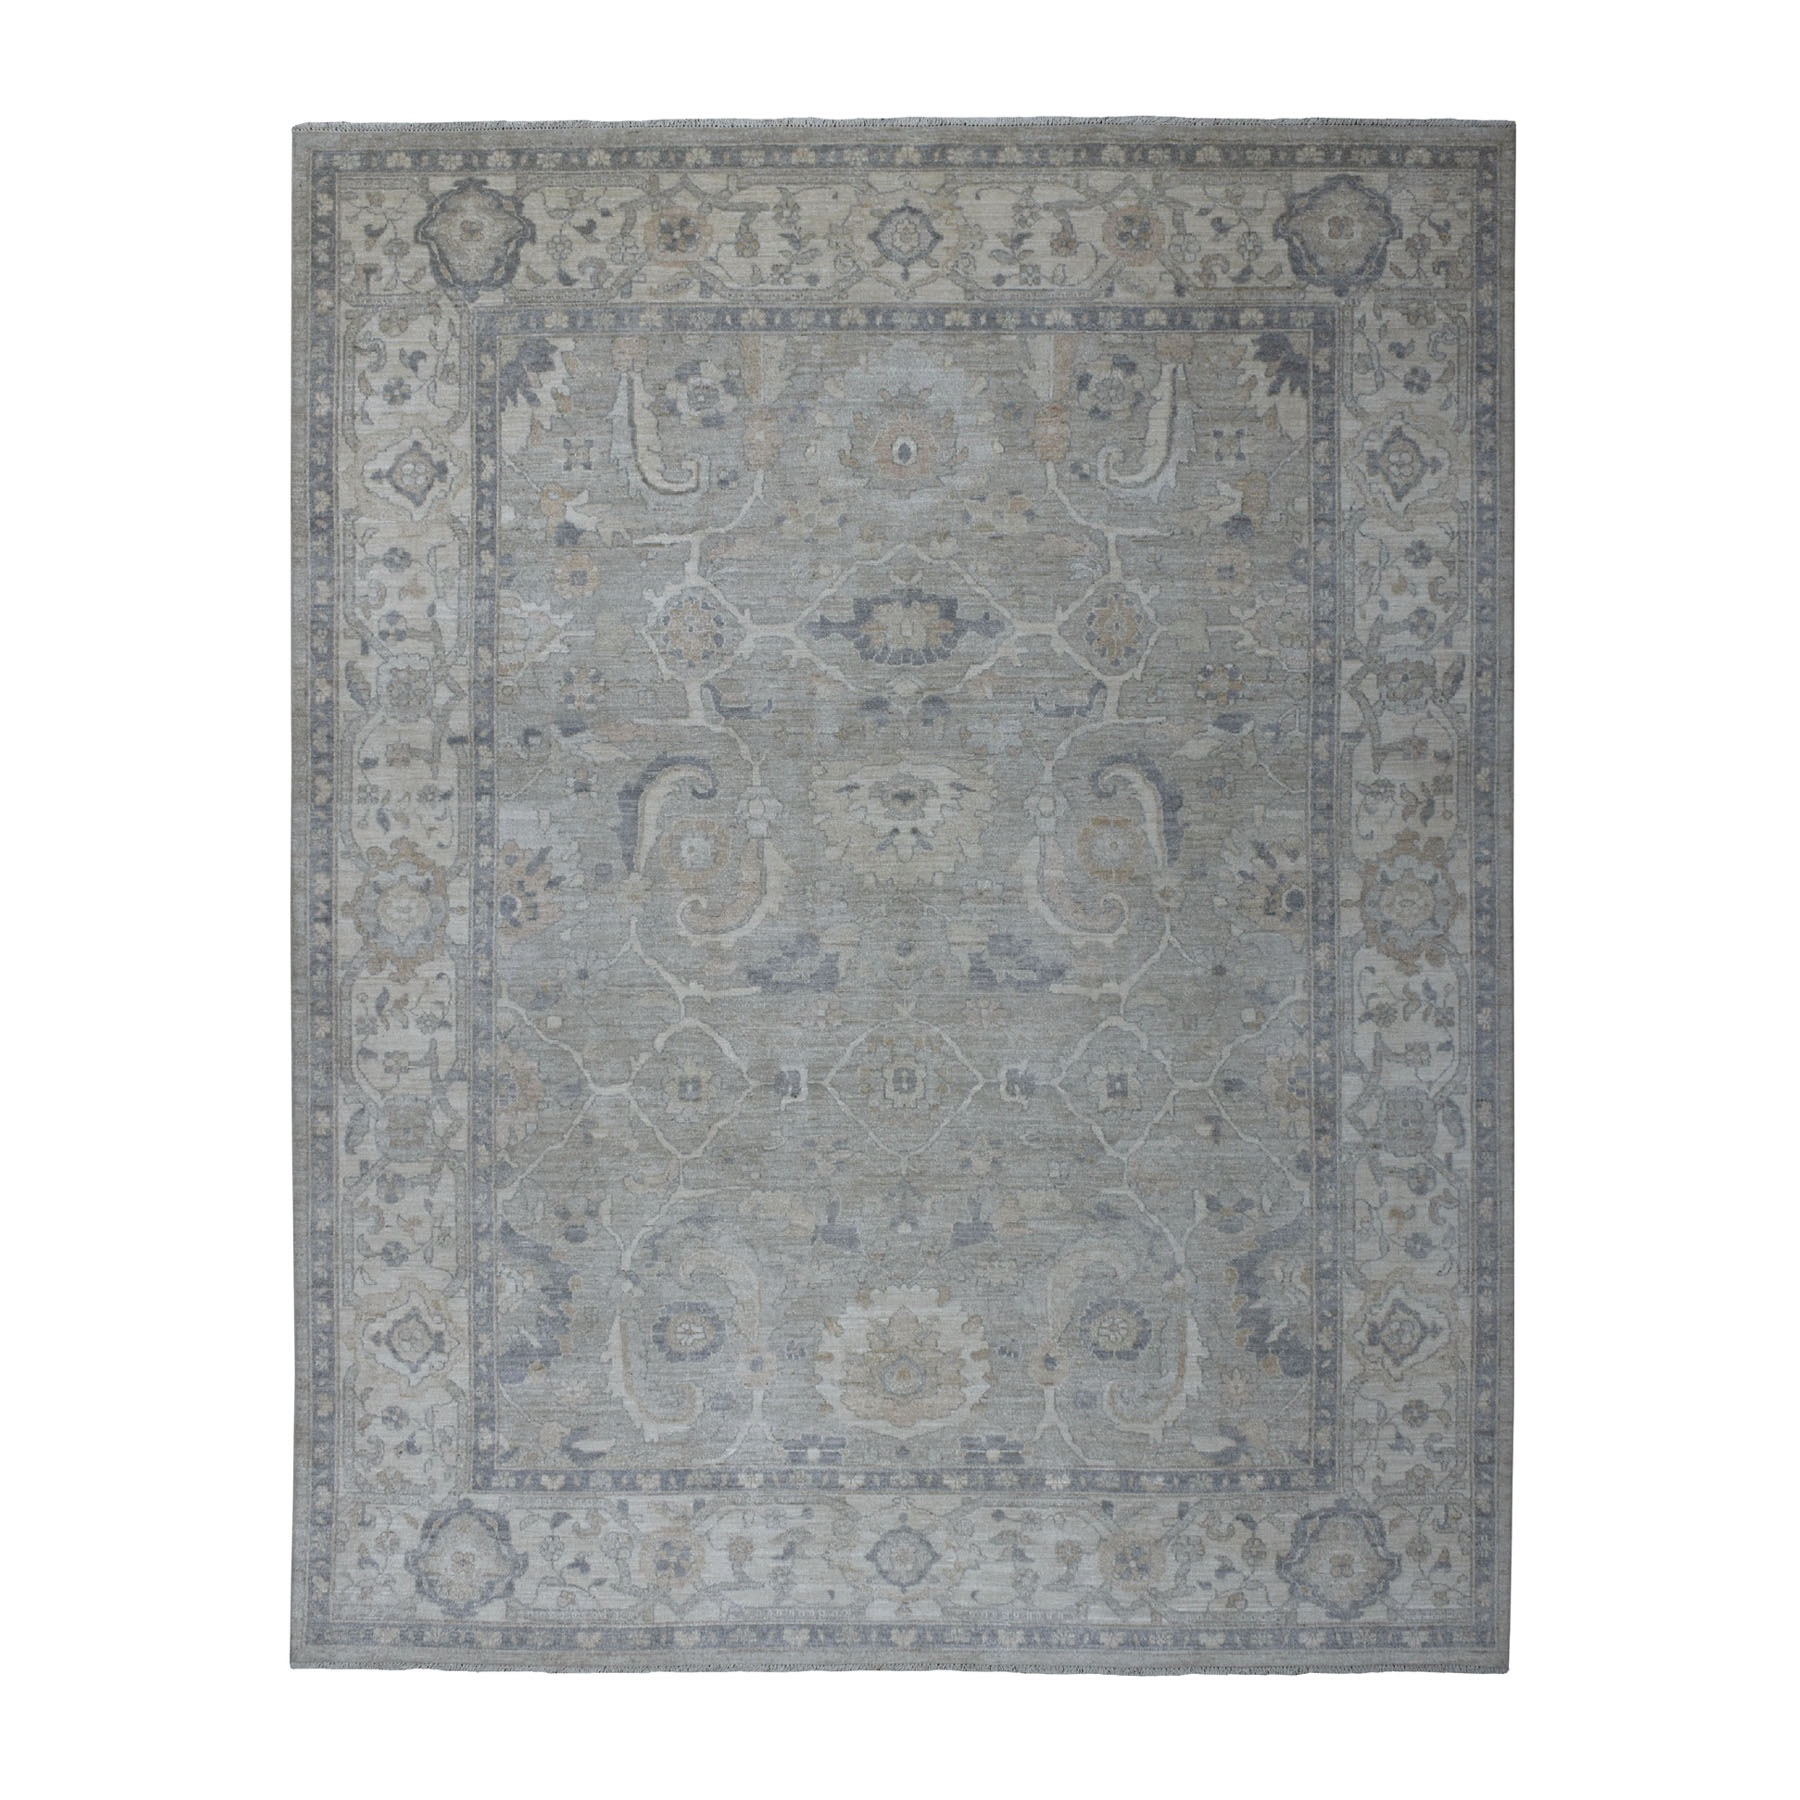 oushak and peshawar rugs LUV486099